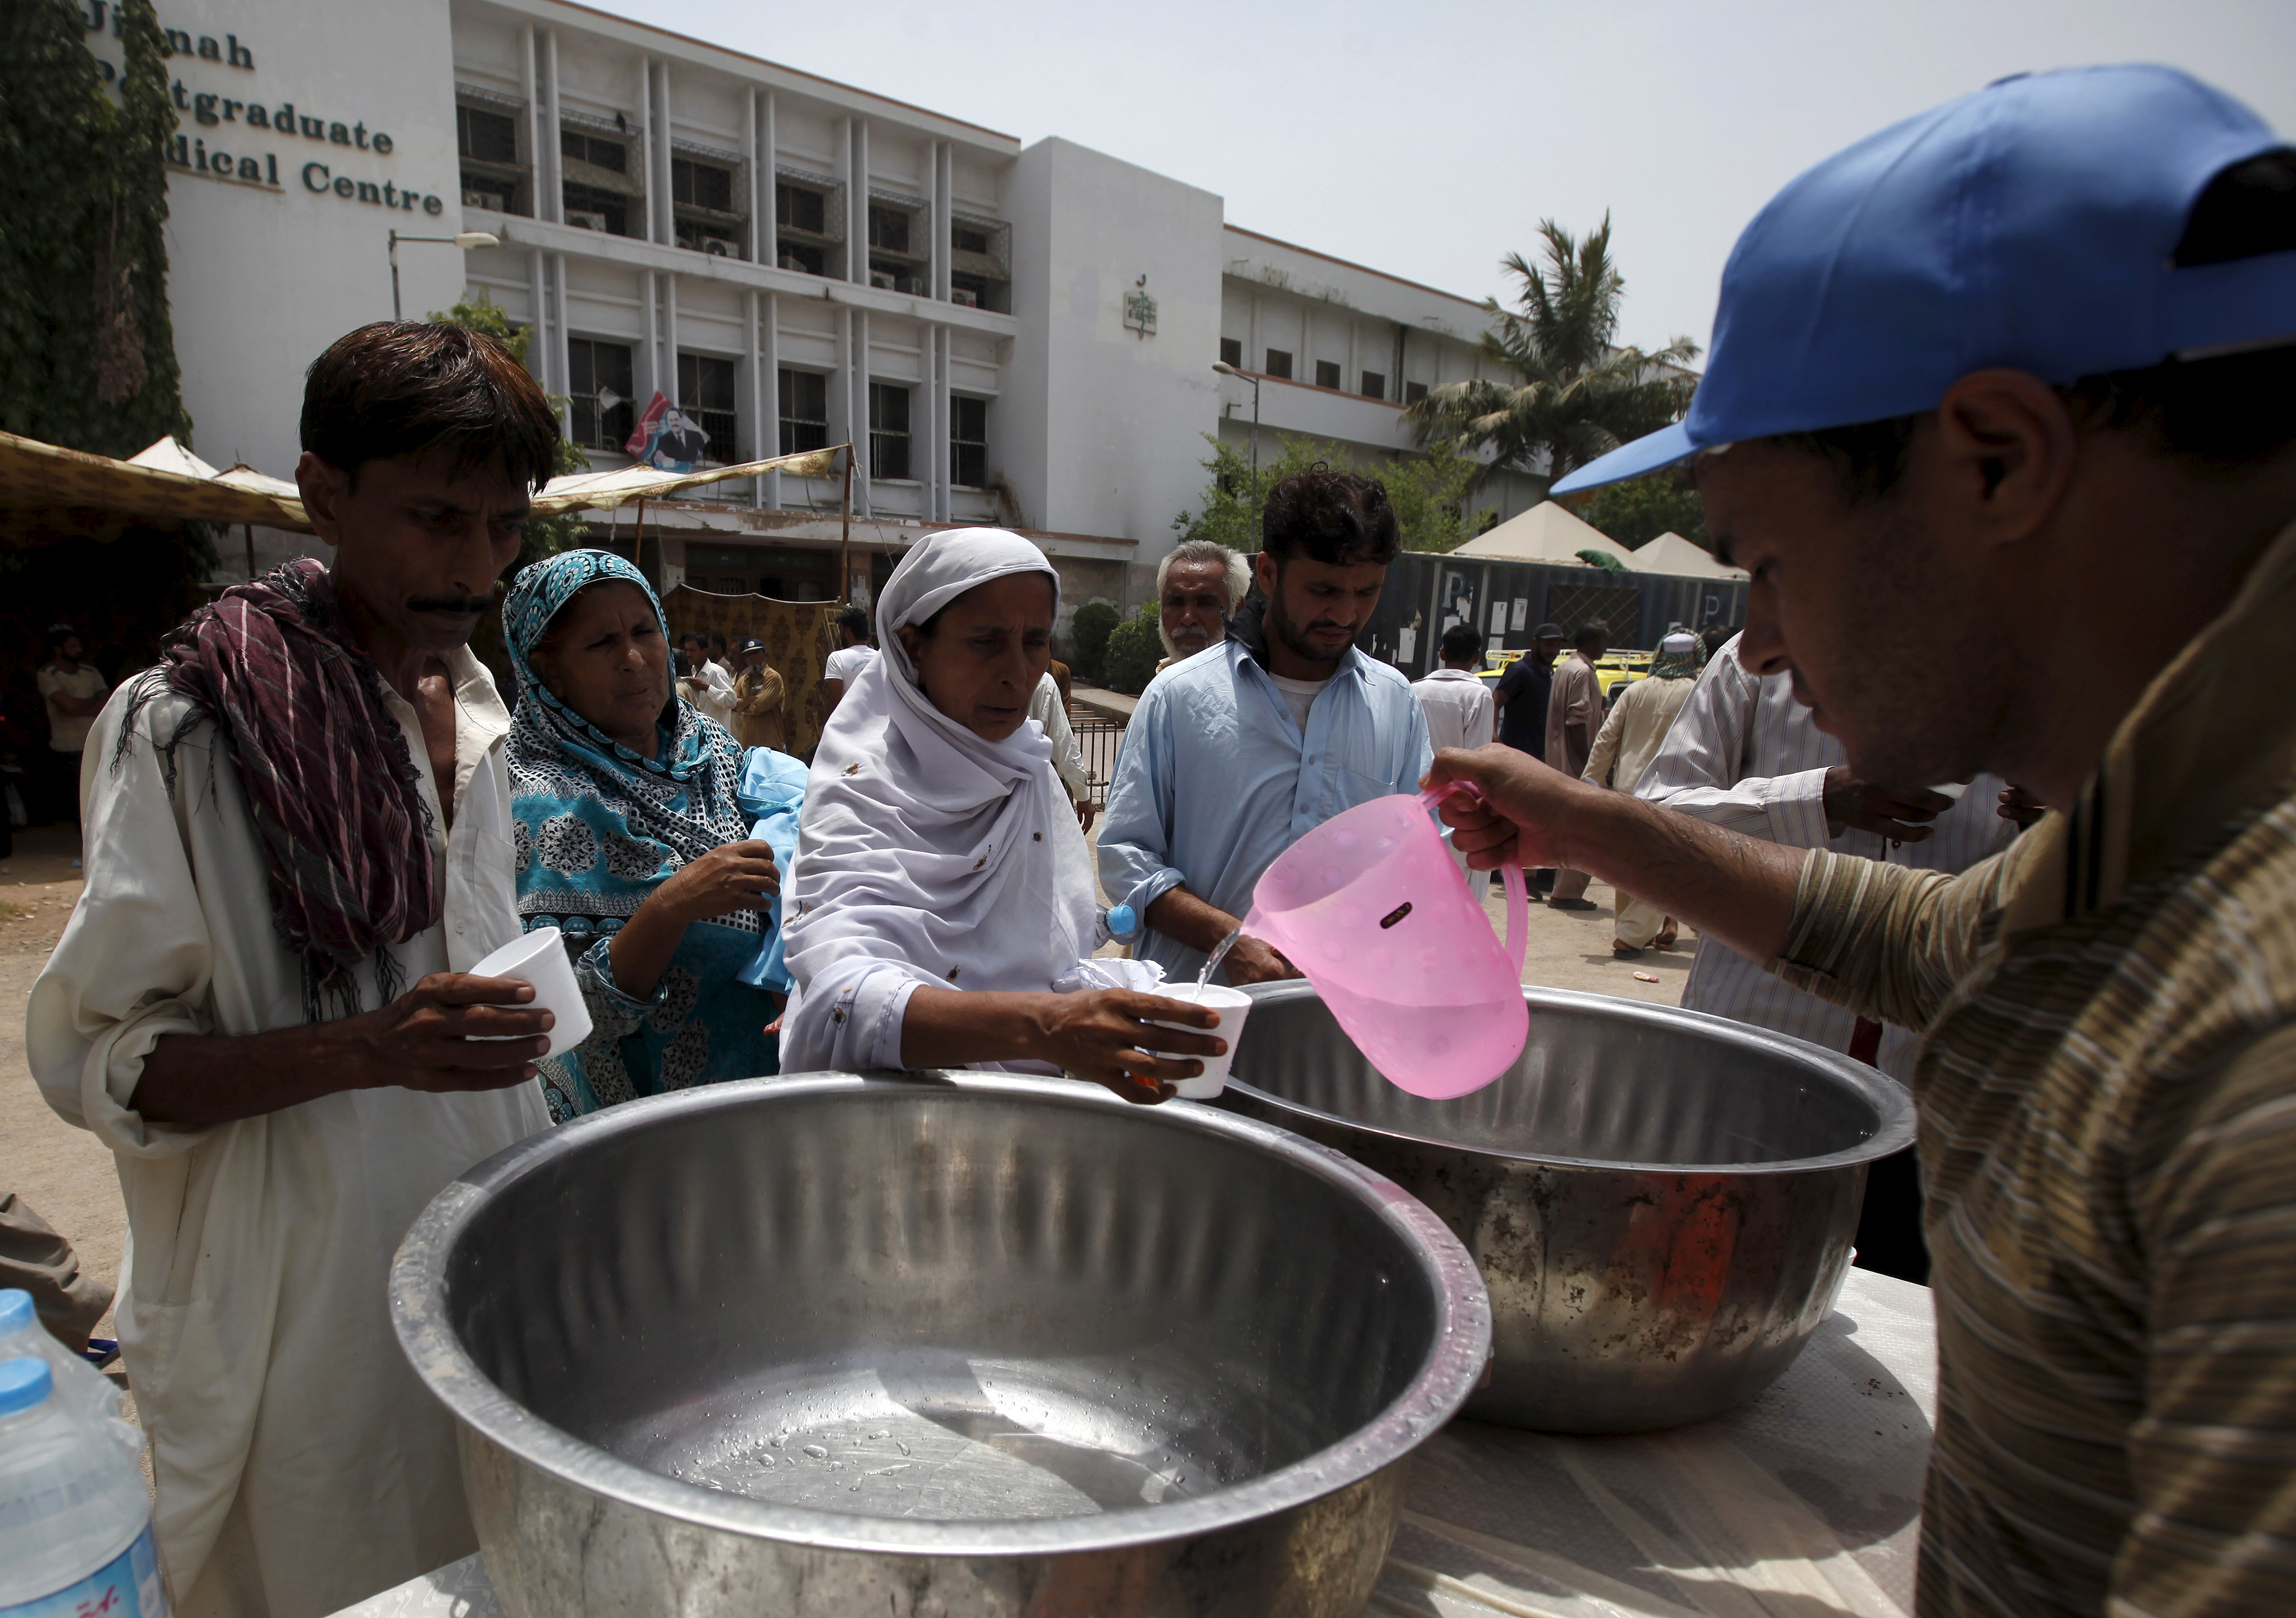 Volunteers hand out drinking water outside the Jinnah Postgraduate Medical Center in Karachi, Pakistan on June 23. Photo by Akhtar Soomro/Reuters